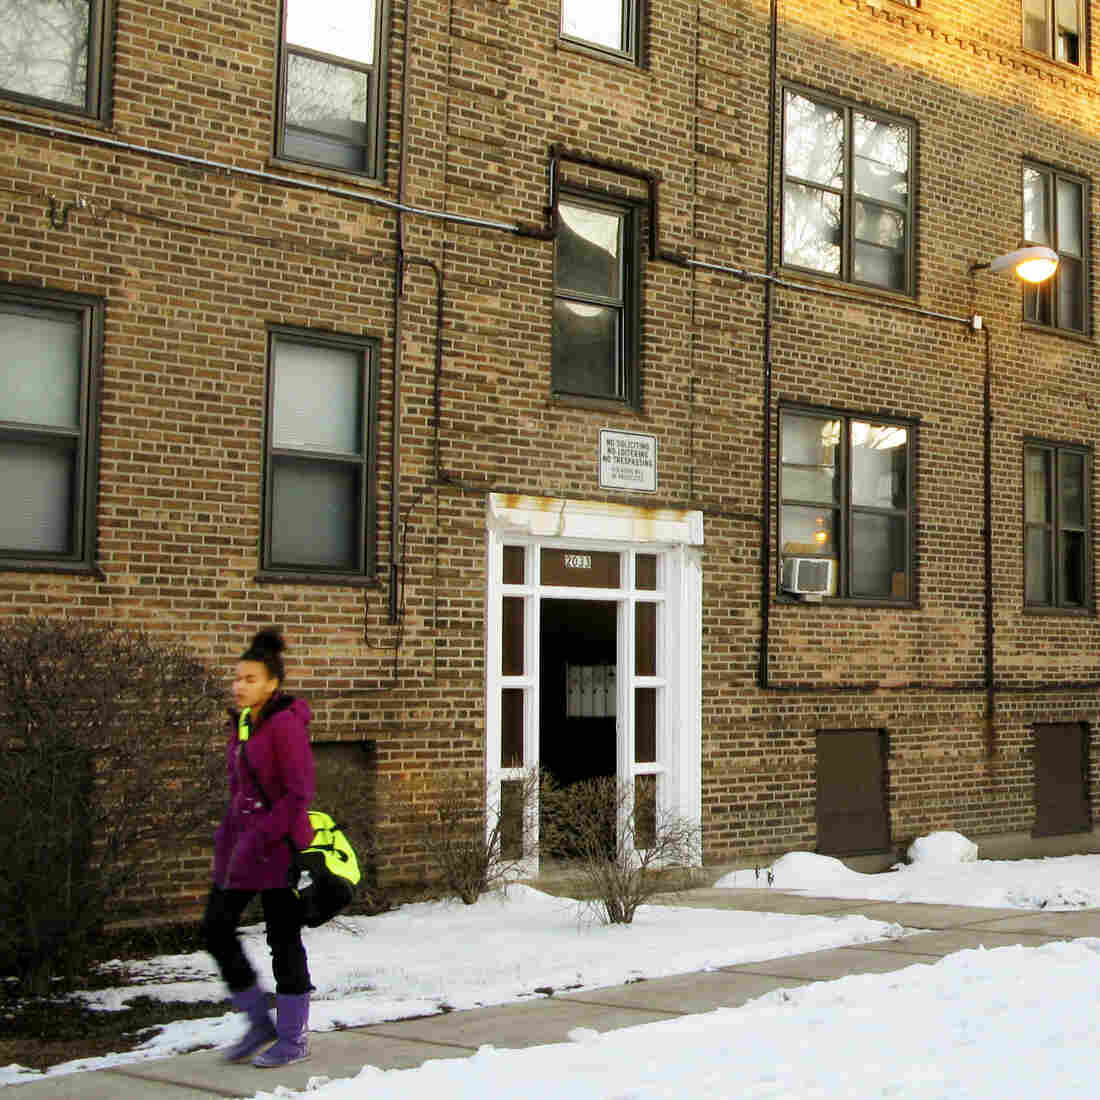 A resident of Lathrop Homes leaves one of the few occupied buildings in the development. The city wants to redevelop the public housing as mixed use, and offered vouchers to encourage residents to relocate.